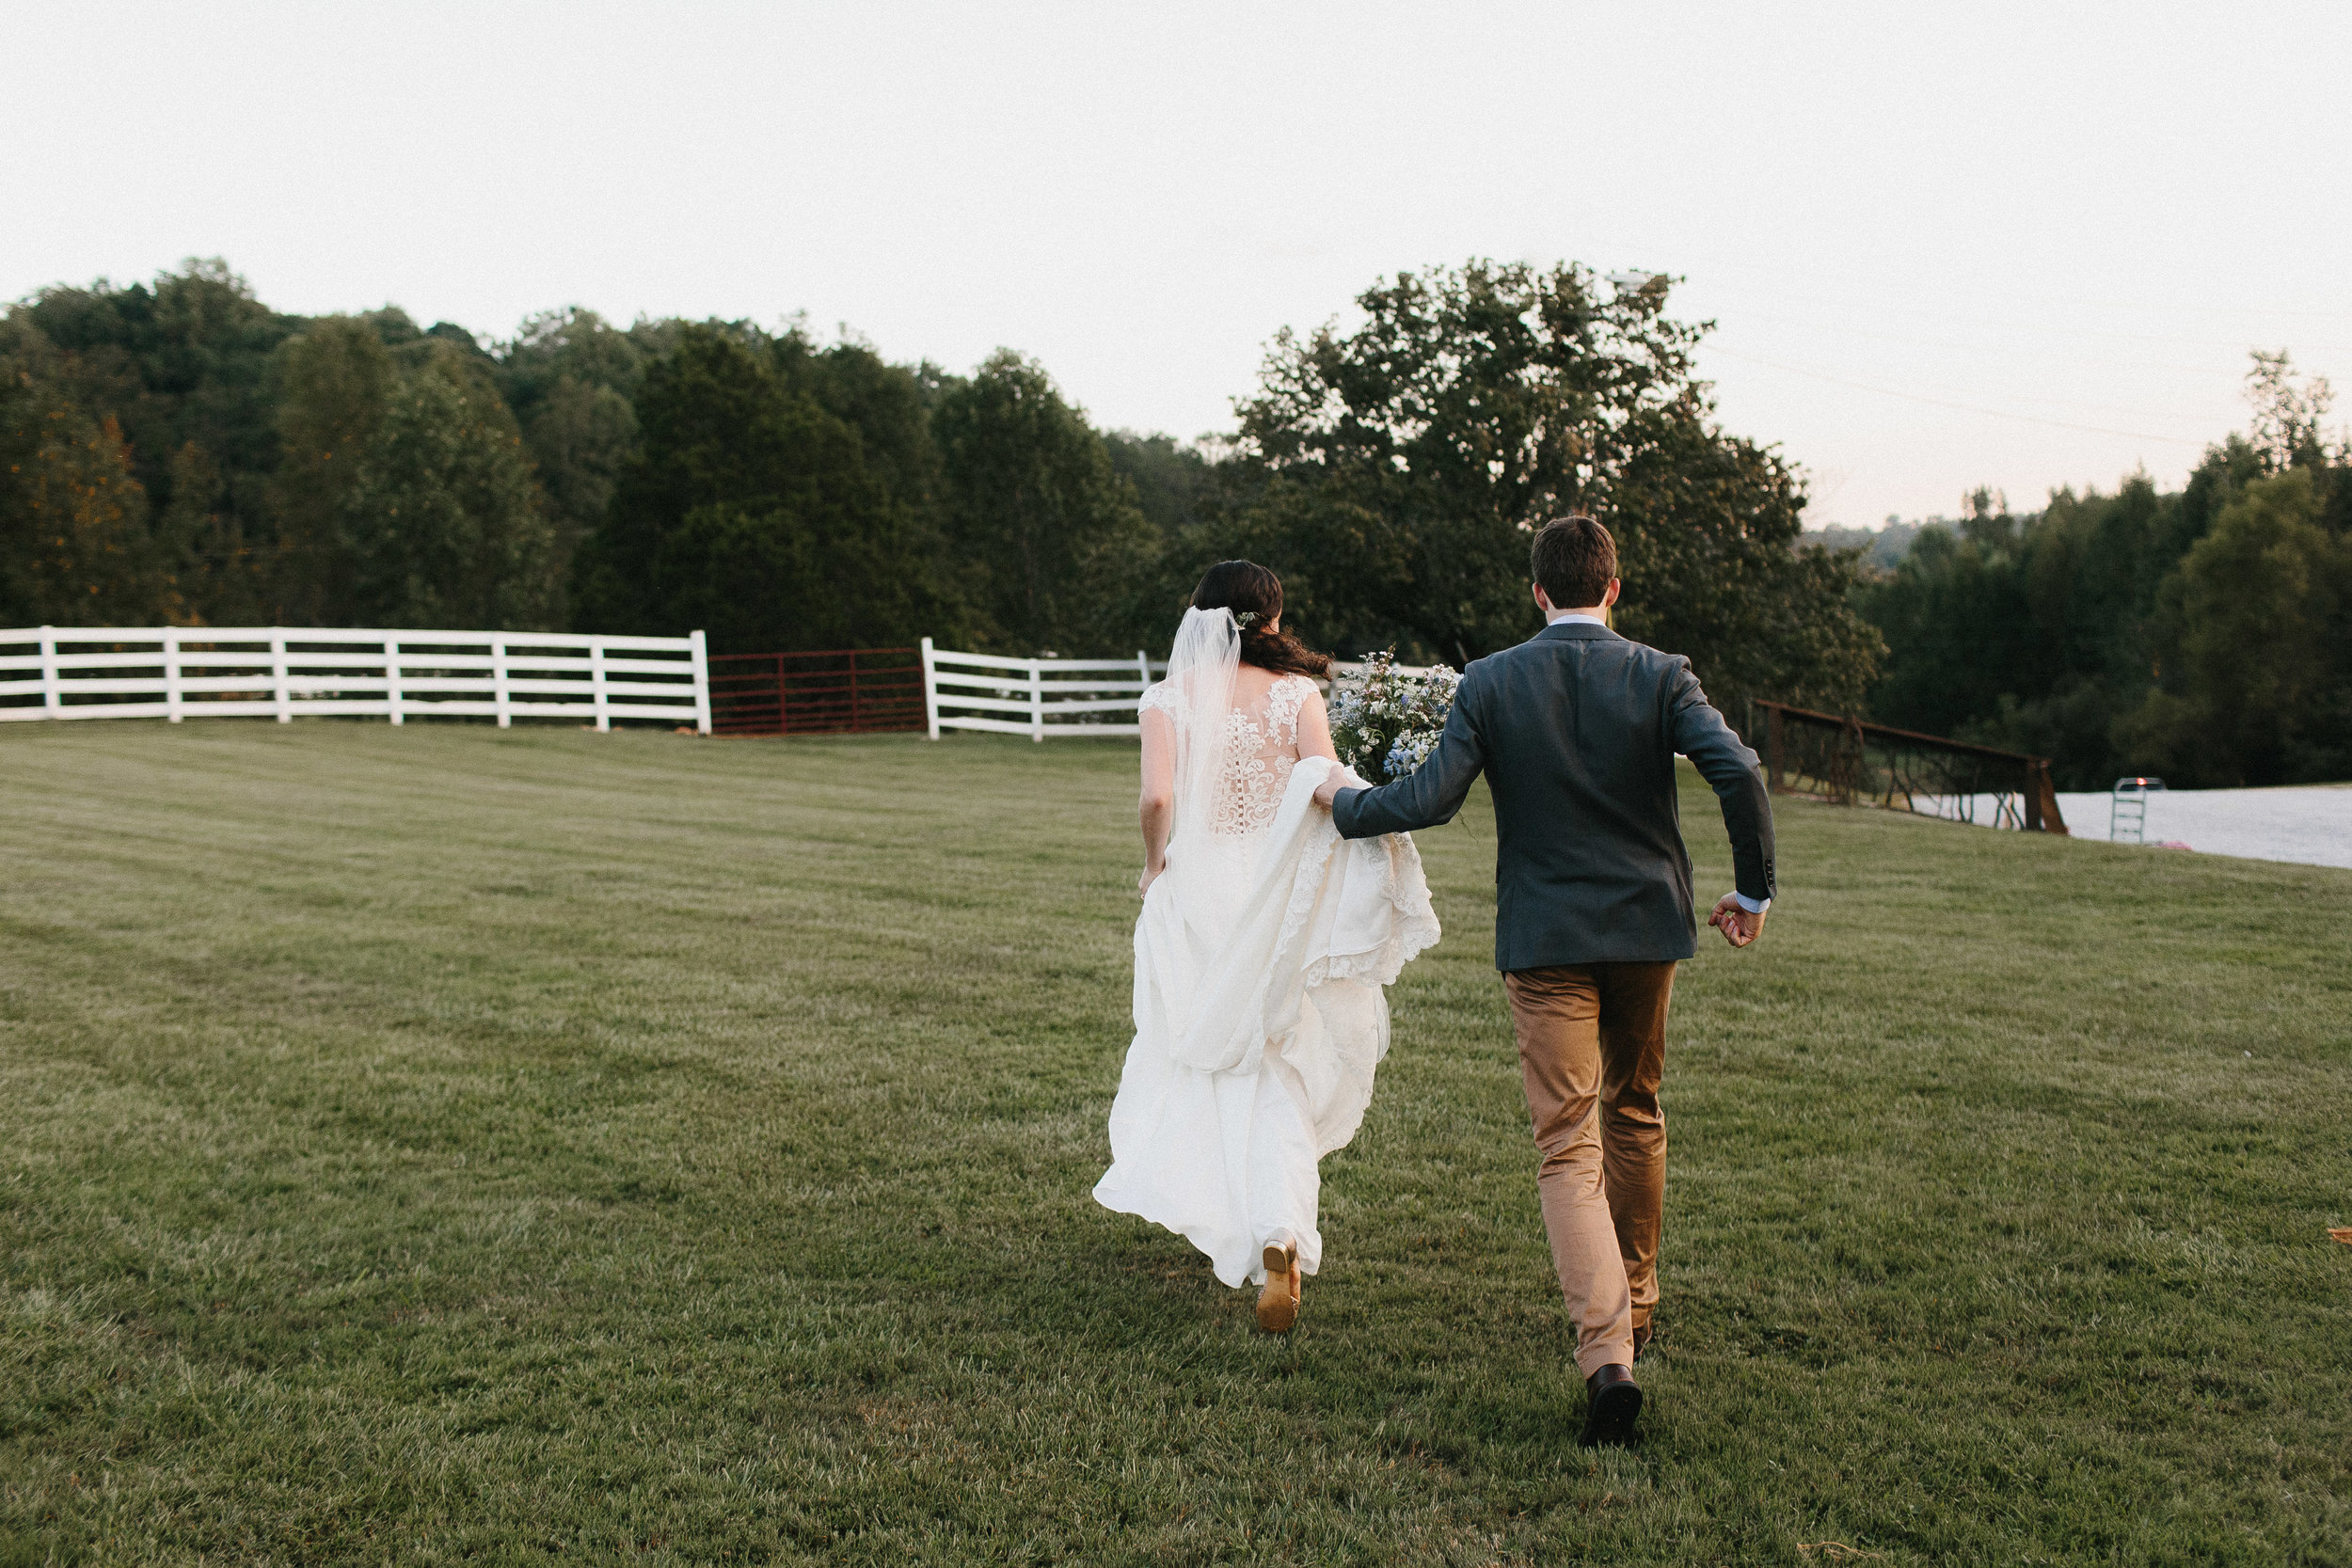 cleveland_georgia_mountain_laurel_farm_natural_classic_timeless_documentary_candid_wedding_emotional_photojournalism_river_west_1778.jpg